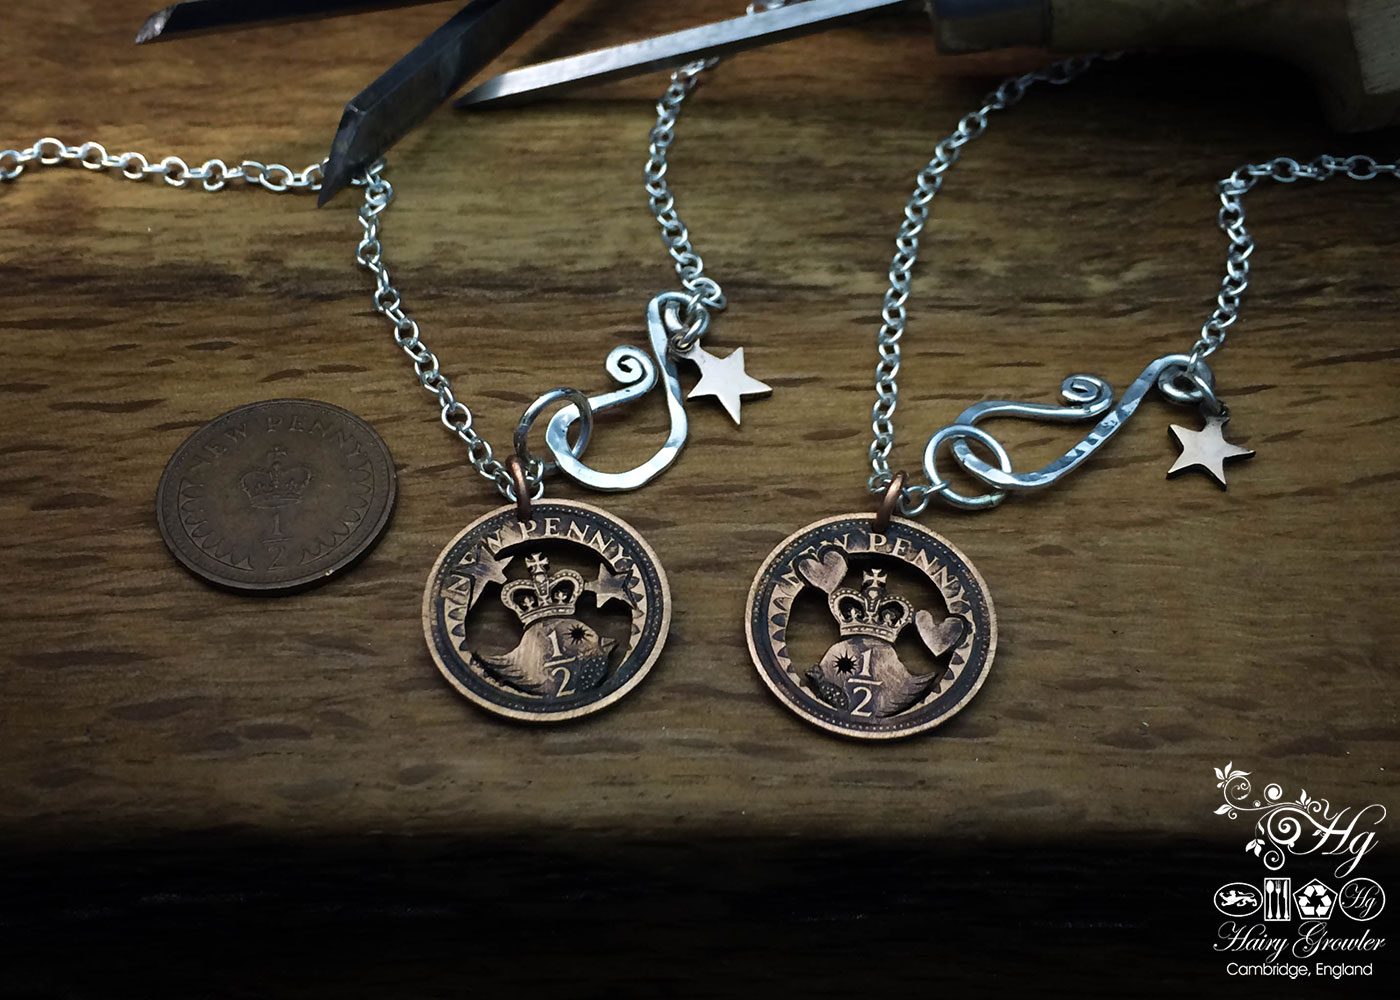 Hand cut halfpenny queen bird coin pendant necklace made in the Hg workshop